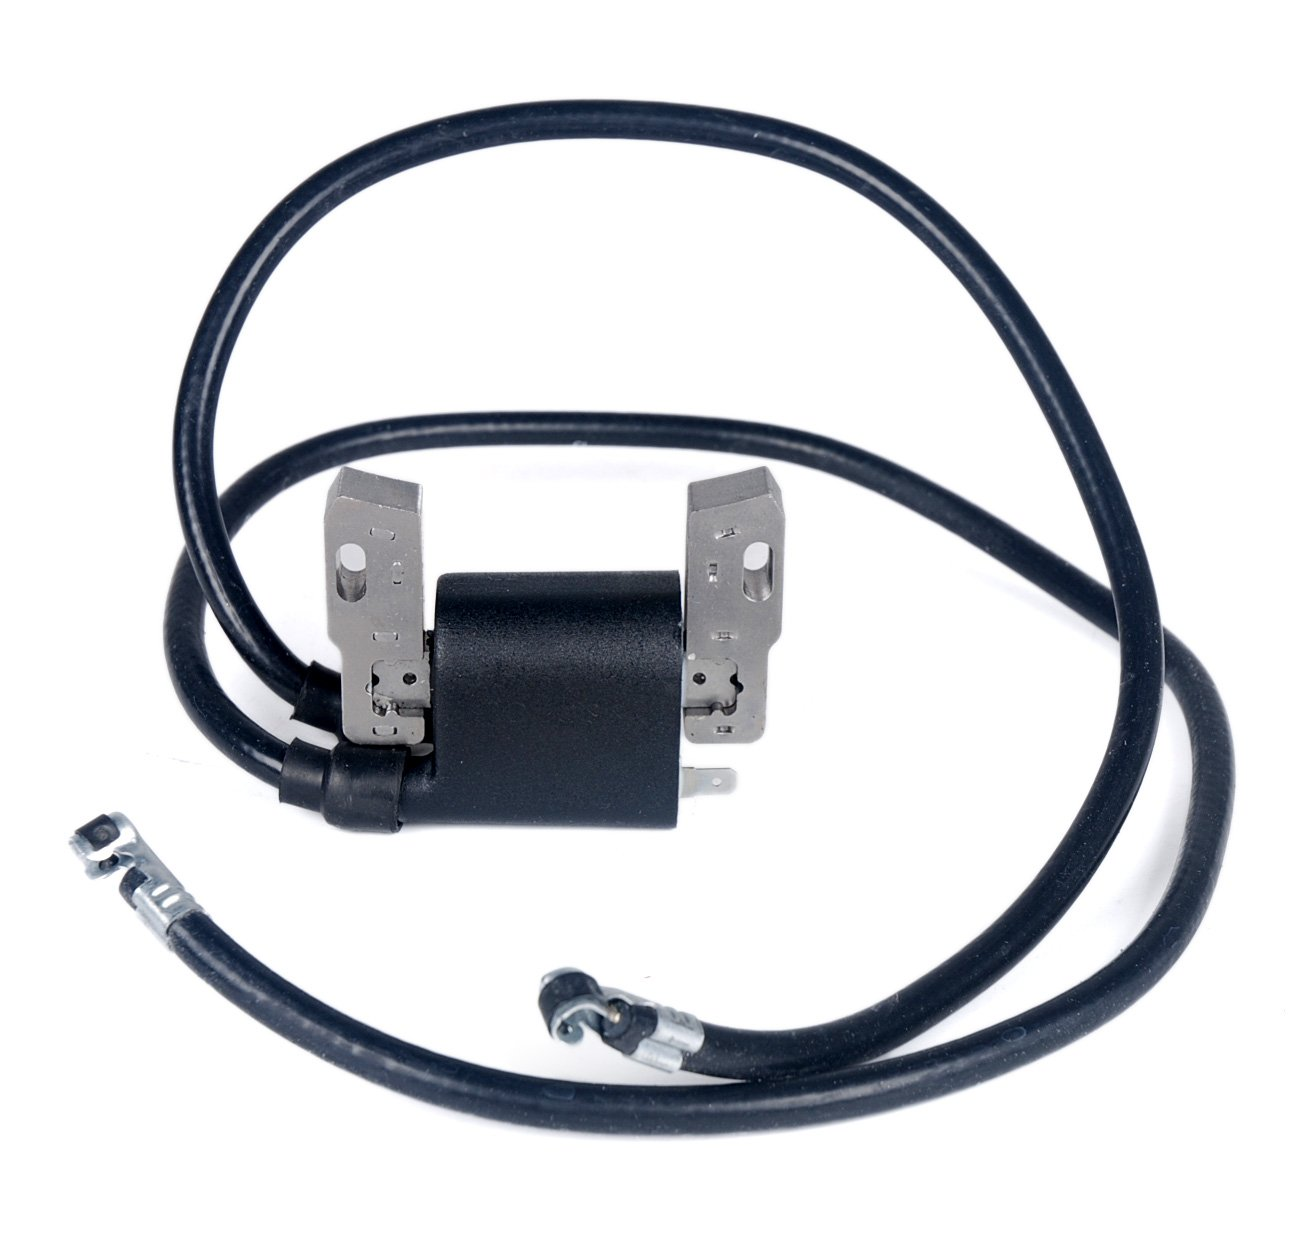 HIFROM Replace Ignition Coil for Briggs & Stratton Armature Magneto 460707 460777 461707 by HIFROM (Image #8)